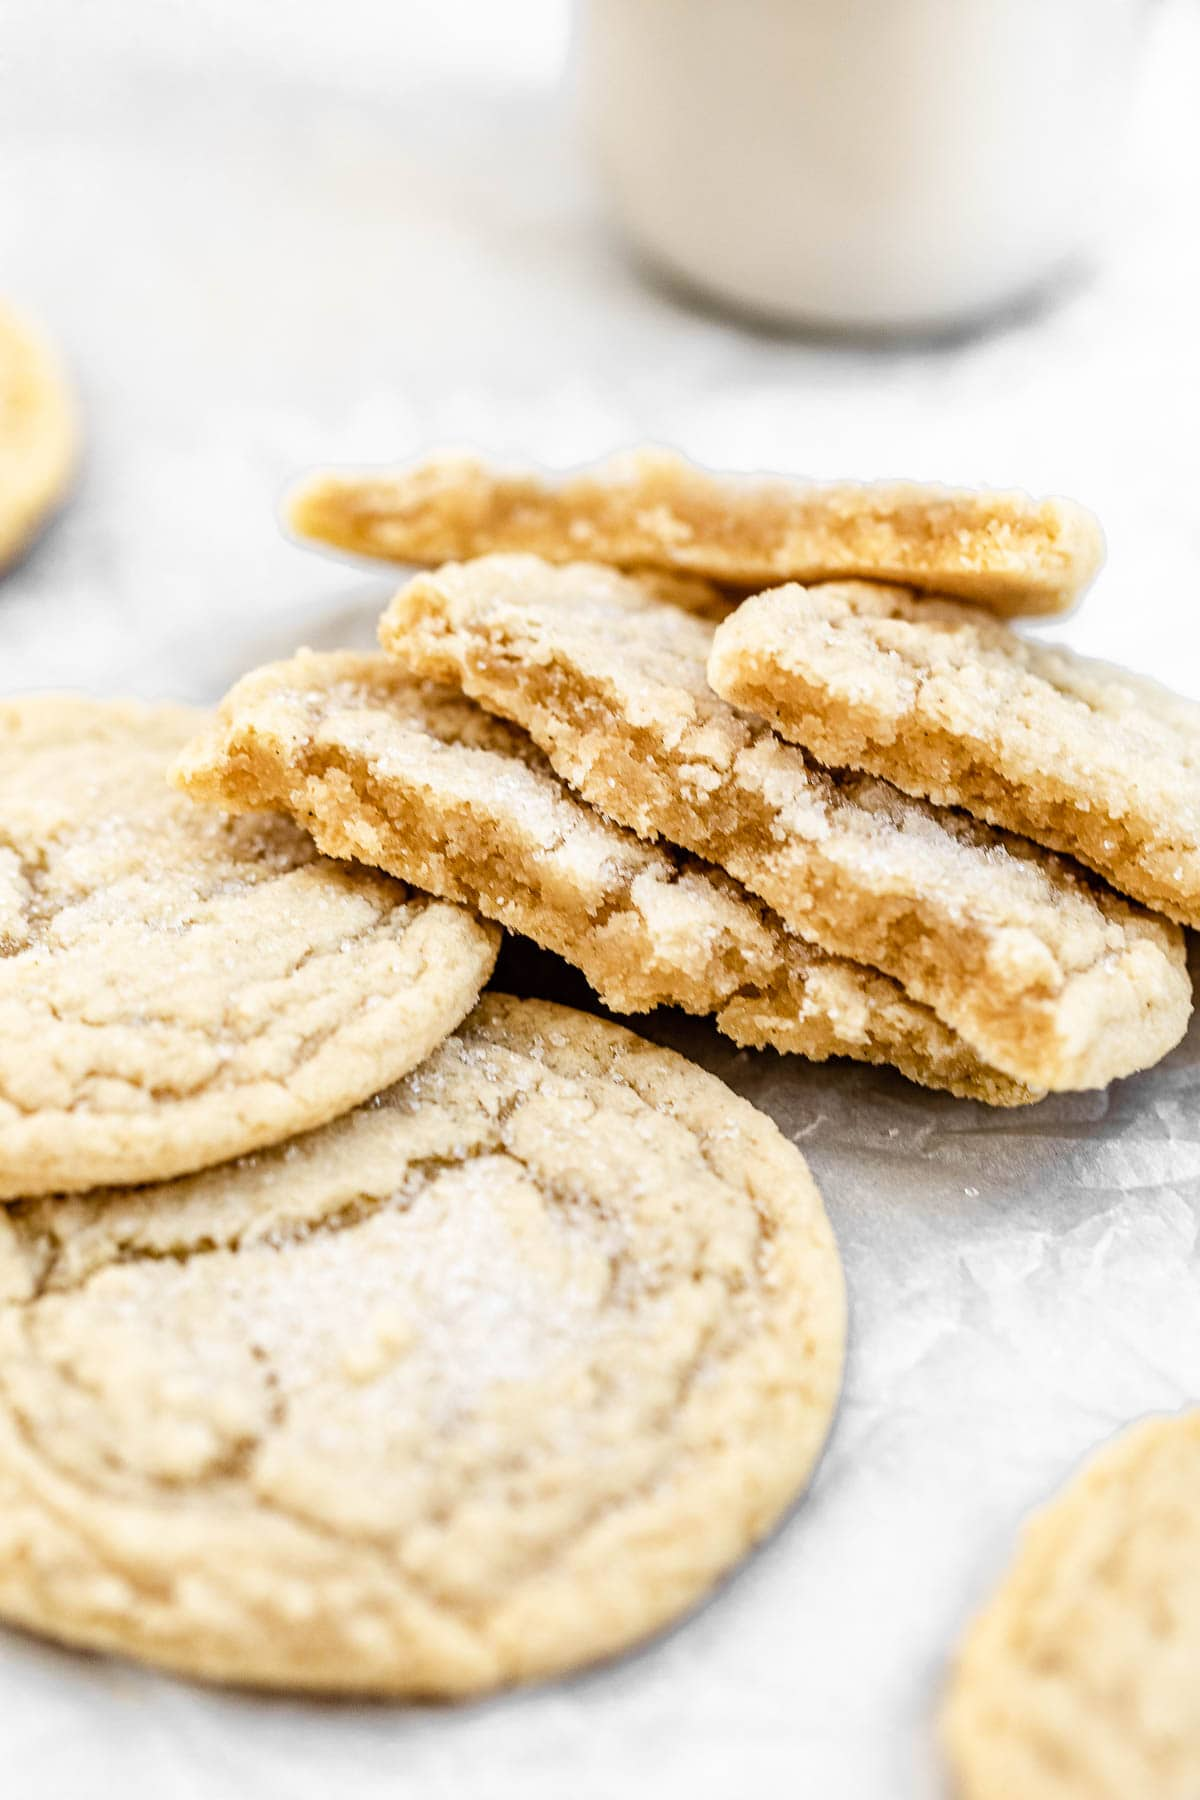 Gluten free sugar cookies cut in half on a piece of parchment paper.